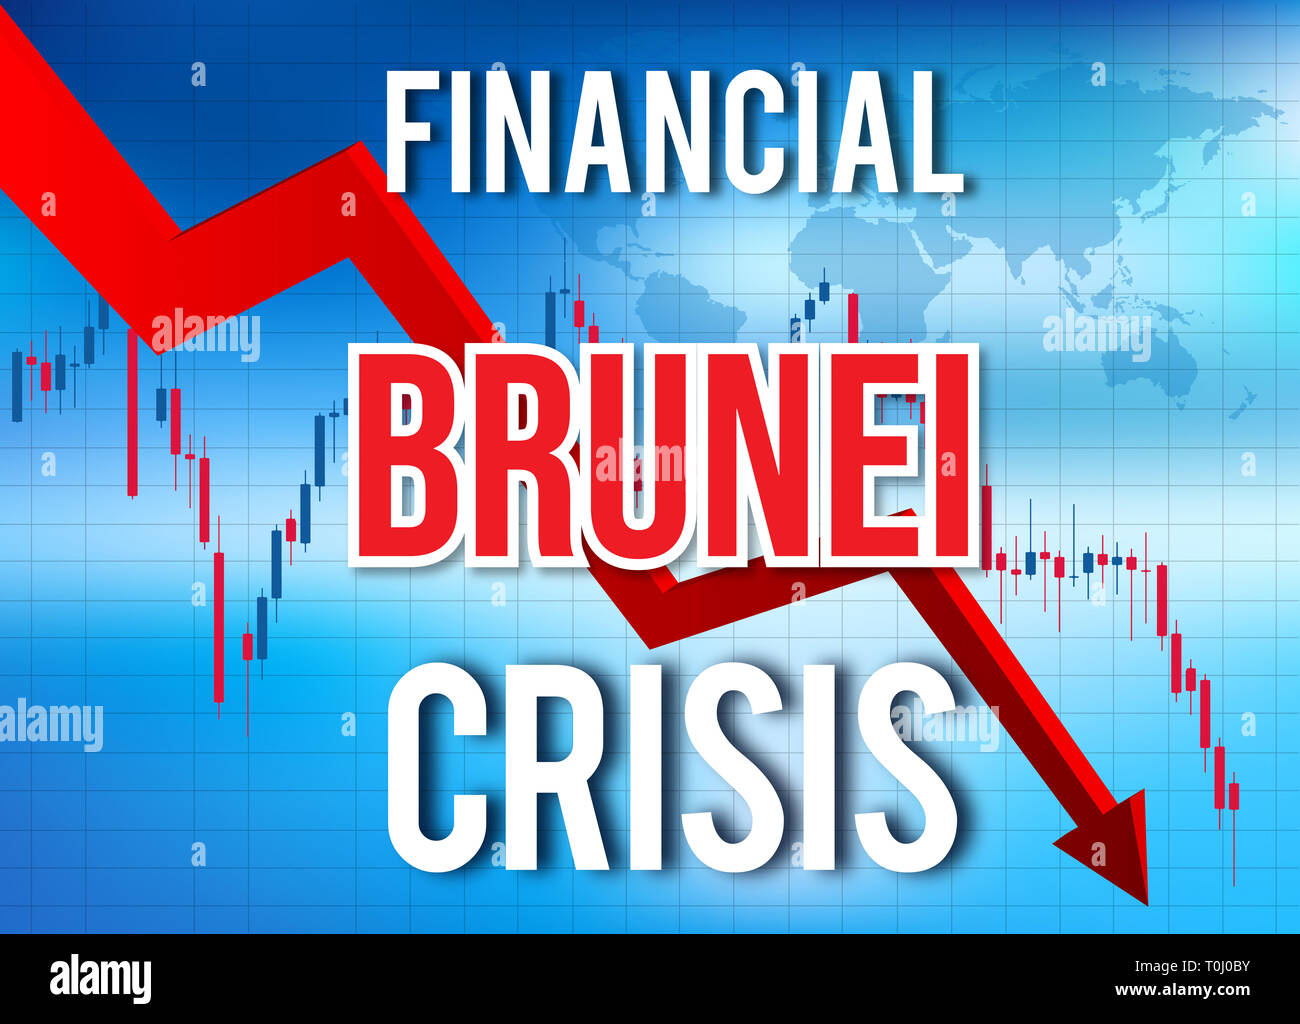 Brunei Financial Crisis Economic Collapse Market Crash Global Meltdown Illustration. - Stock Image